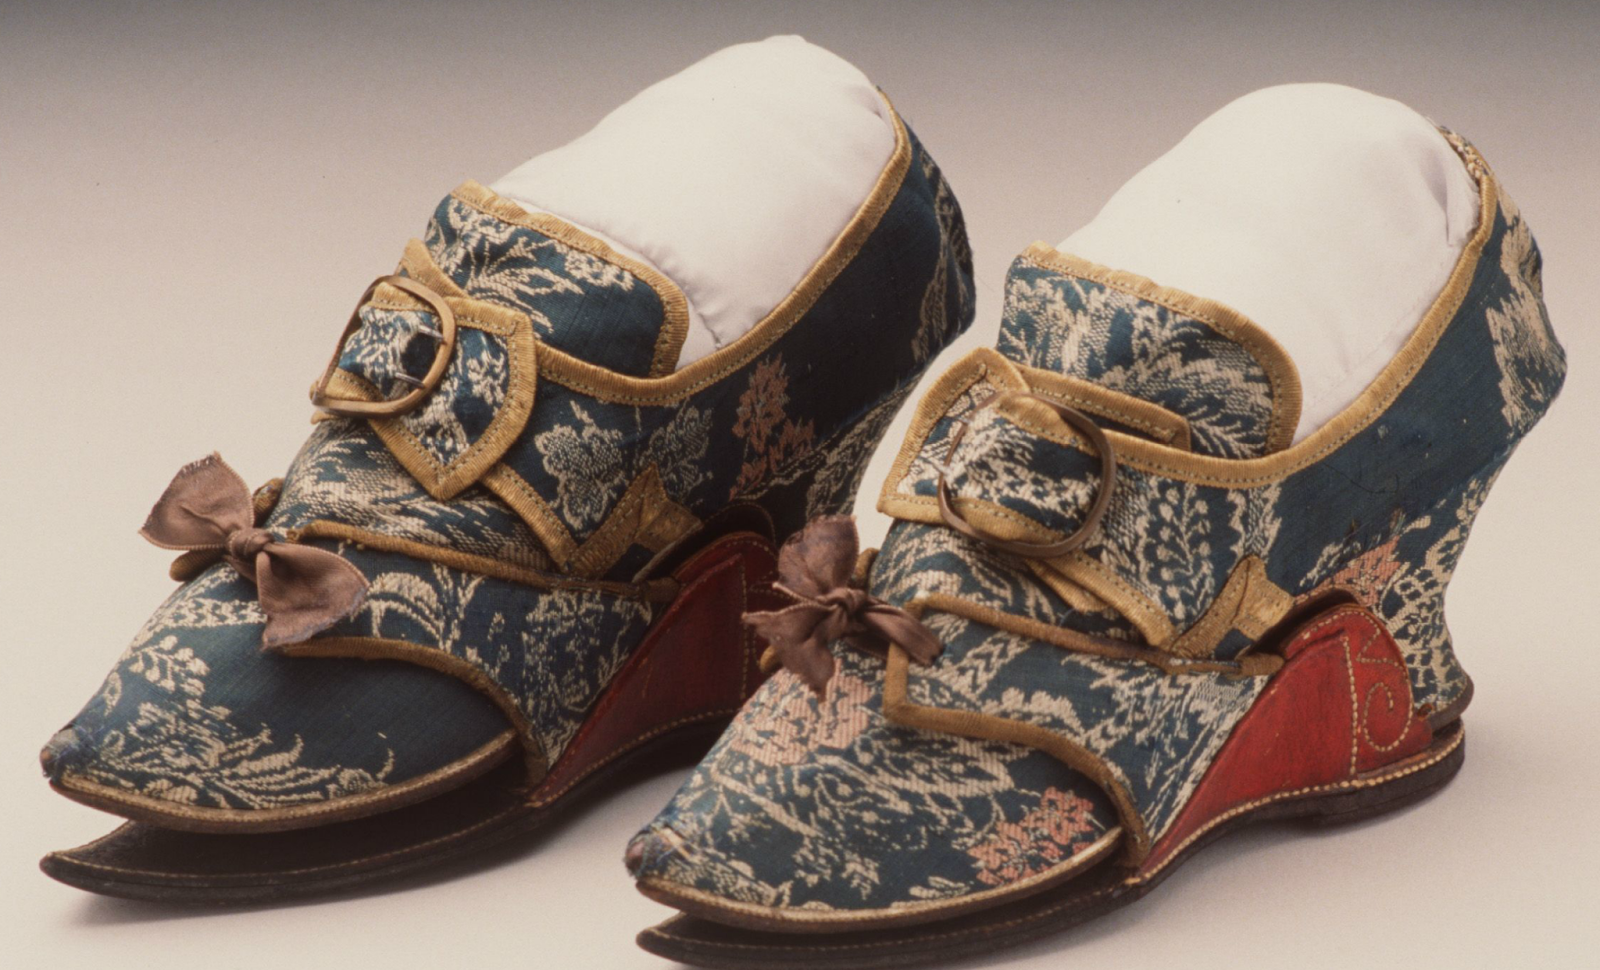 Two Nerdy History Girls Clogs For Keeping An 18th C. Ladyu0026#39;s Shoes Clean